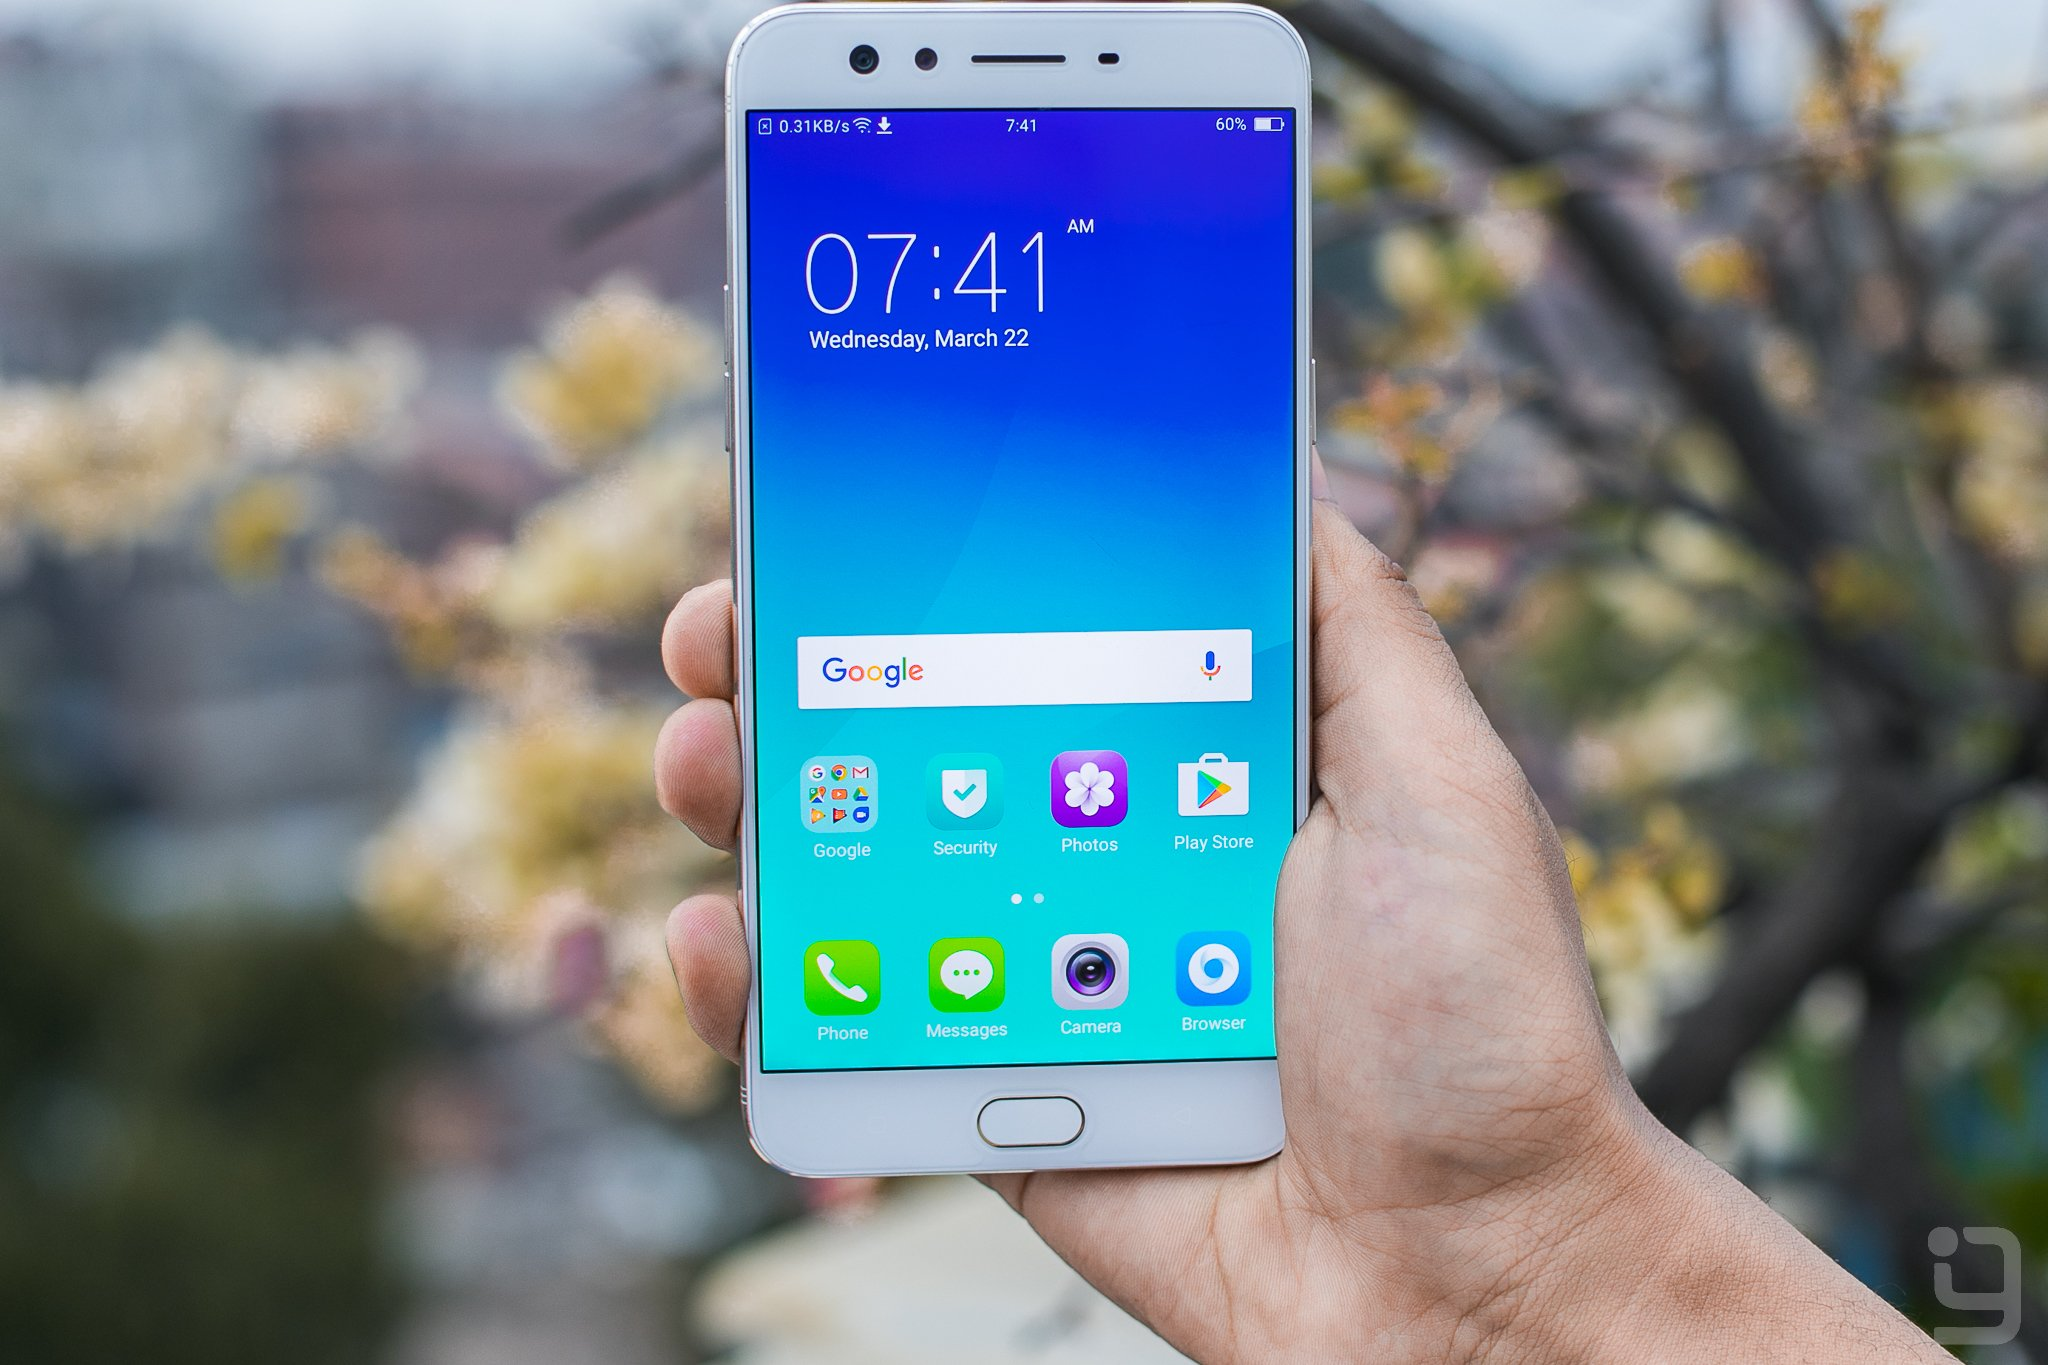 oppo f3 plus display fullhd gorilla glass 5 nepal